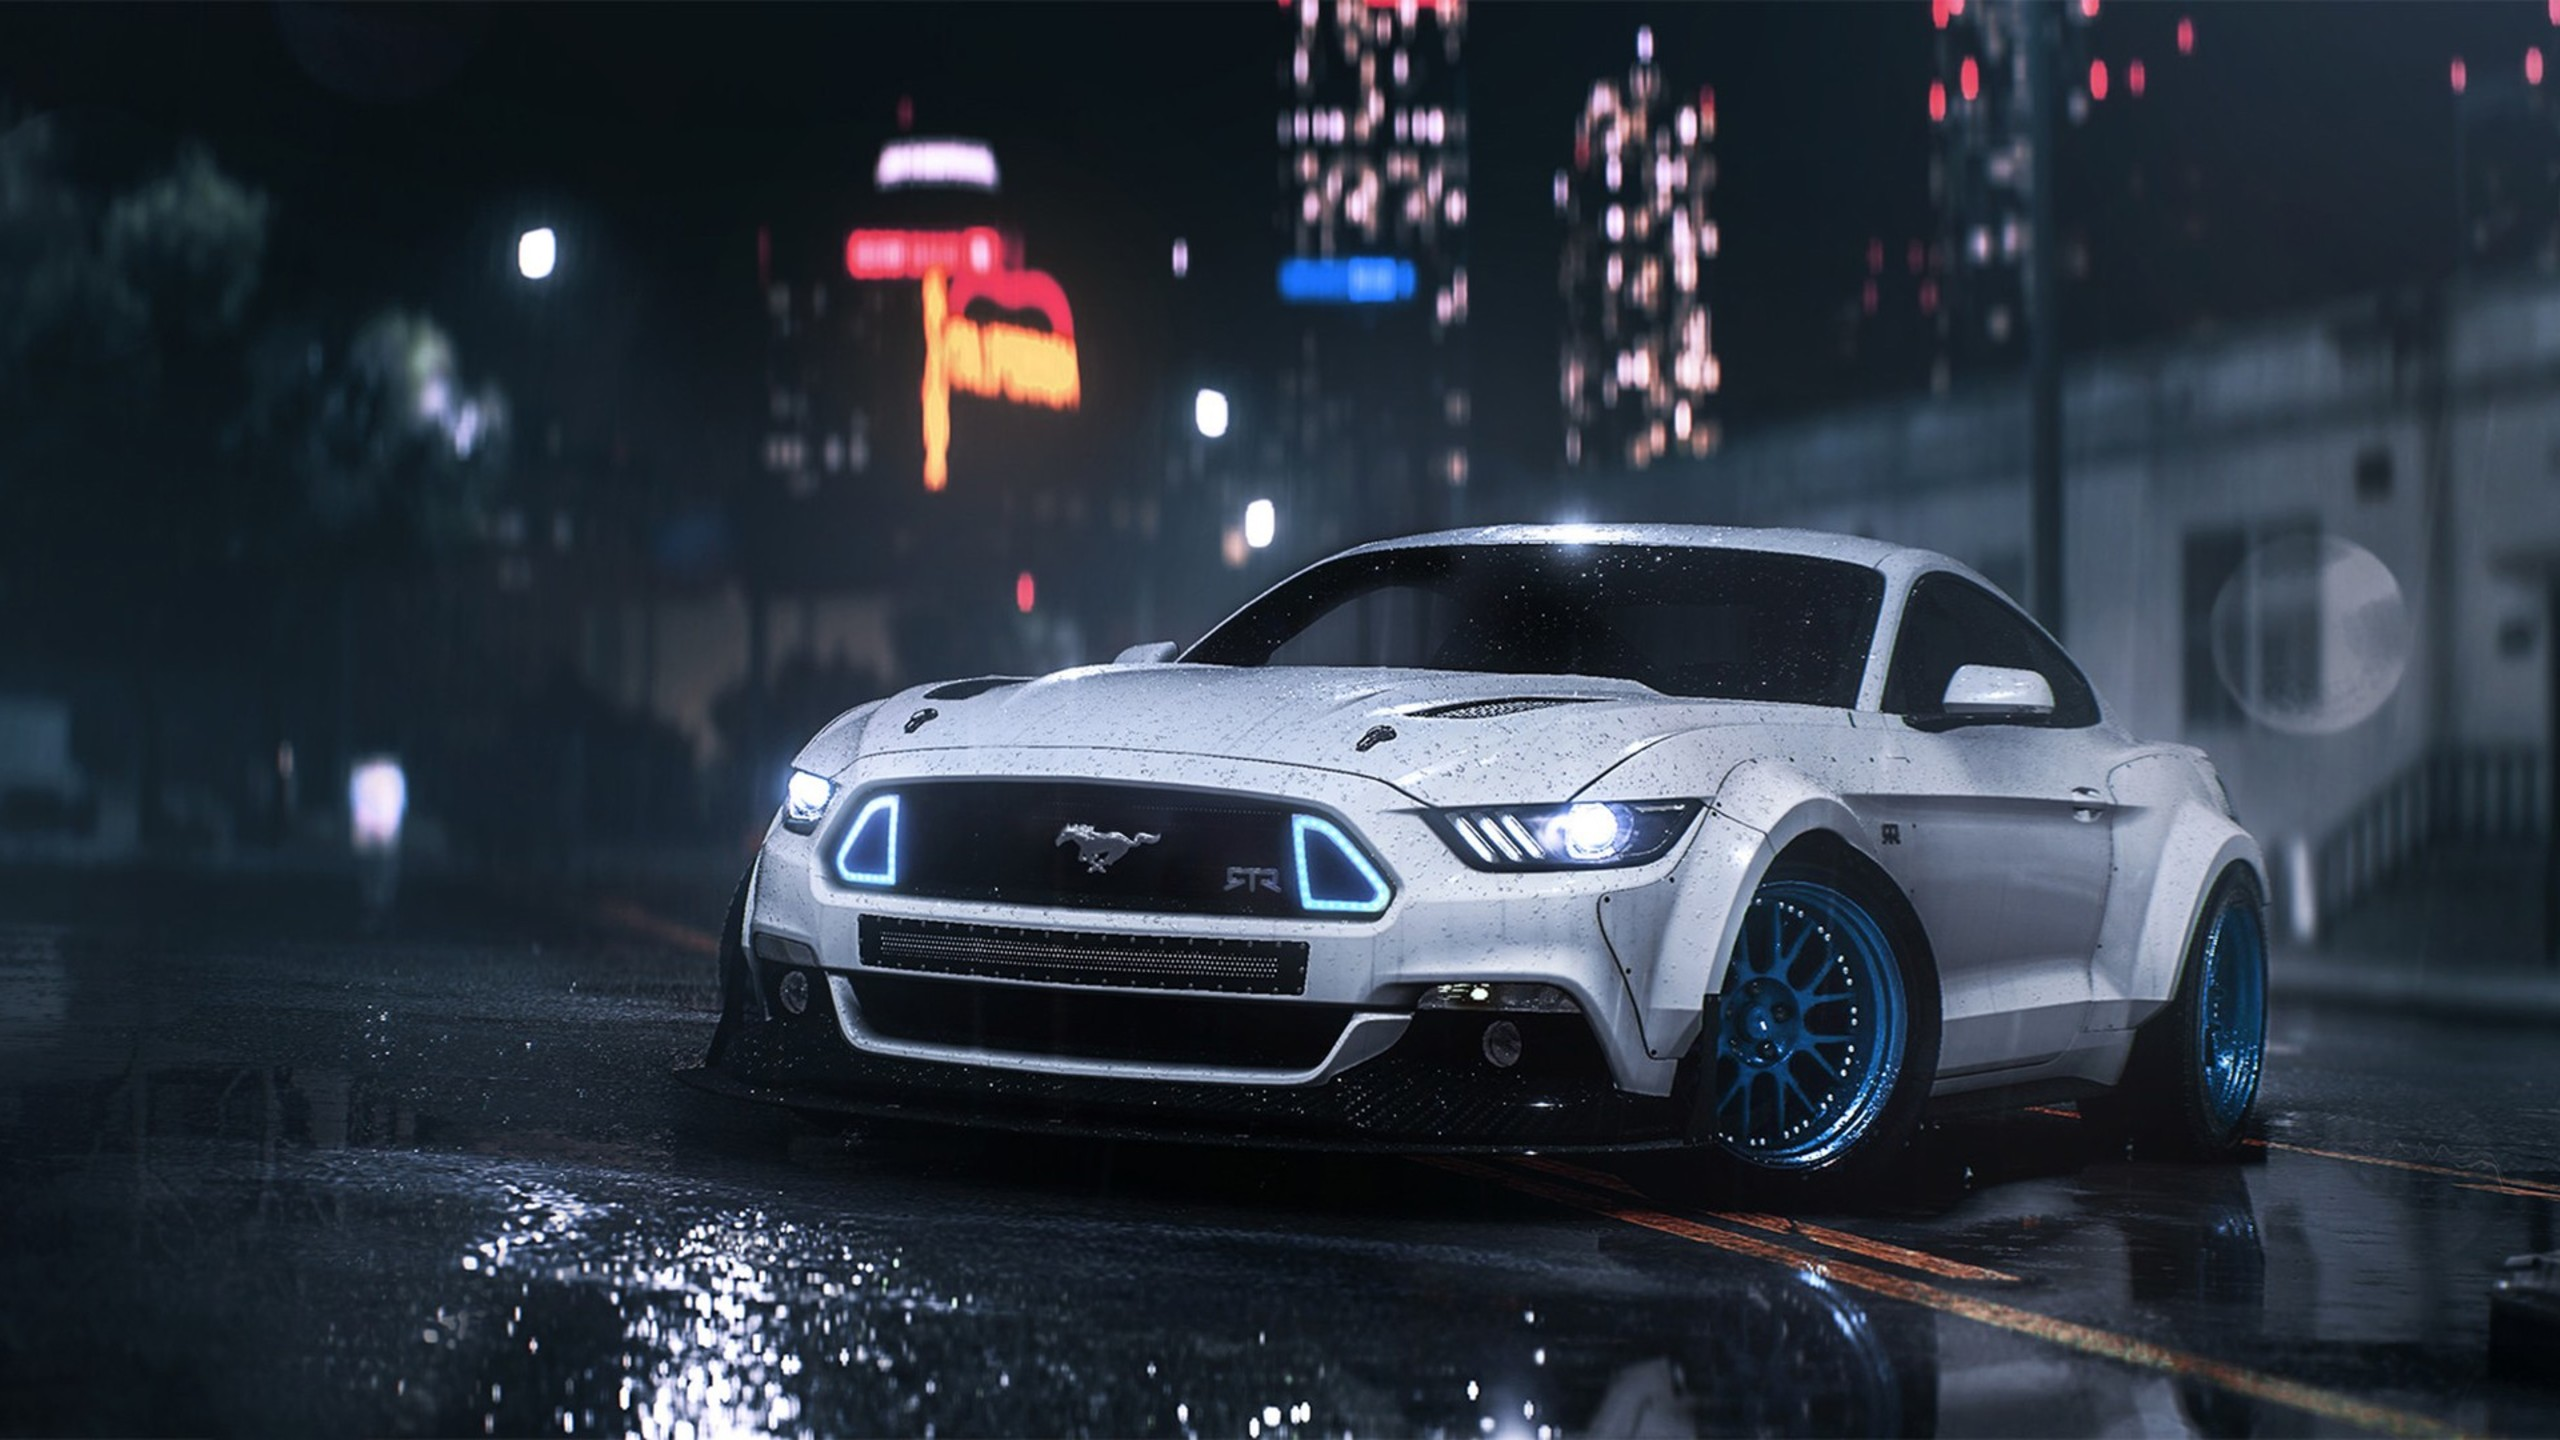 need for speed movie mustang wallpaper